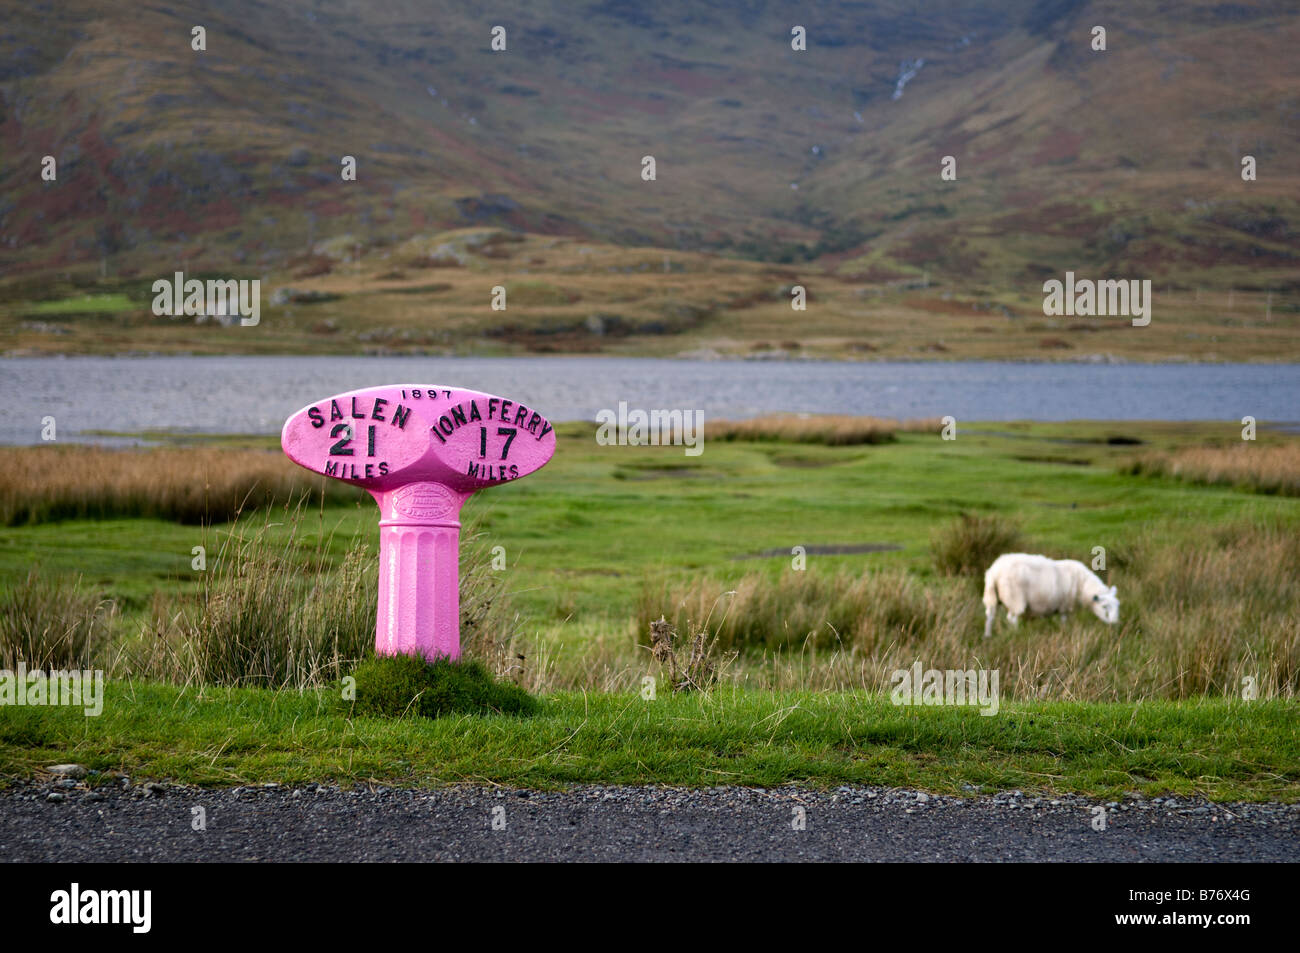 Brightly coloured, painted pink road sign showing distance in miles to Salen and Iona Ferry from the A849 on the - Stock Image